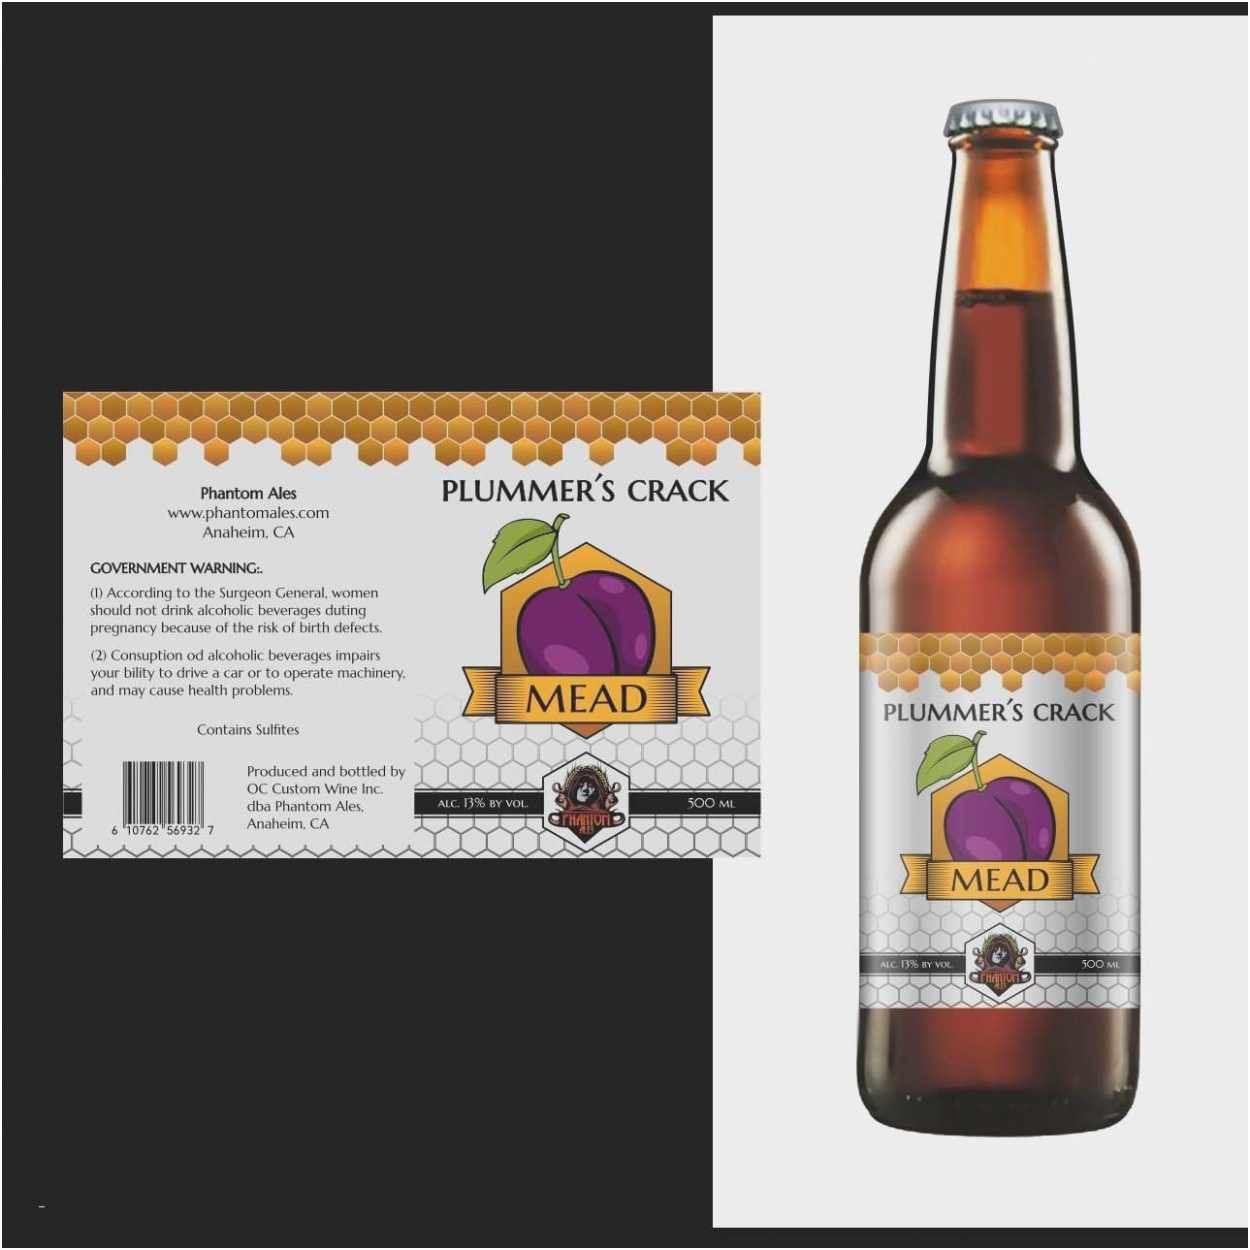 002 Incredible Microsoft Word Beer Bottle Label Template Photo Full